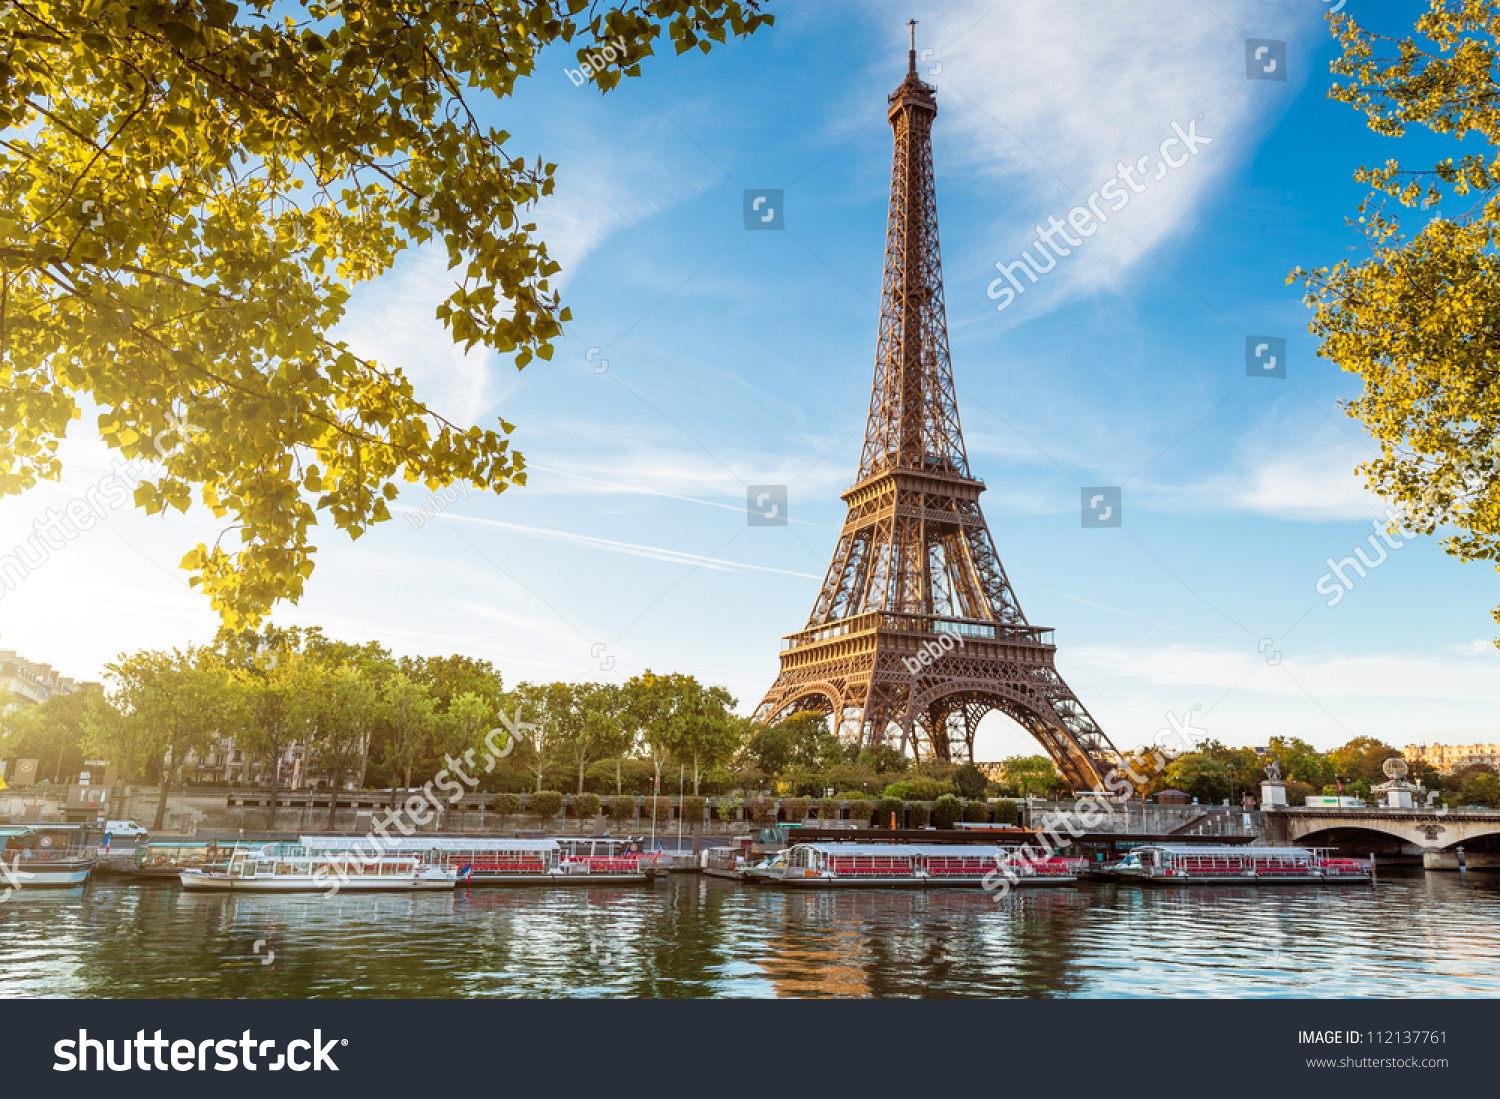 Eiffel tower, Paris. France.